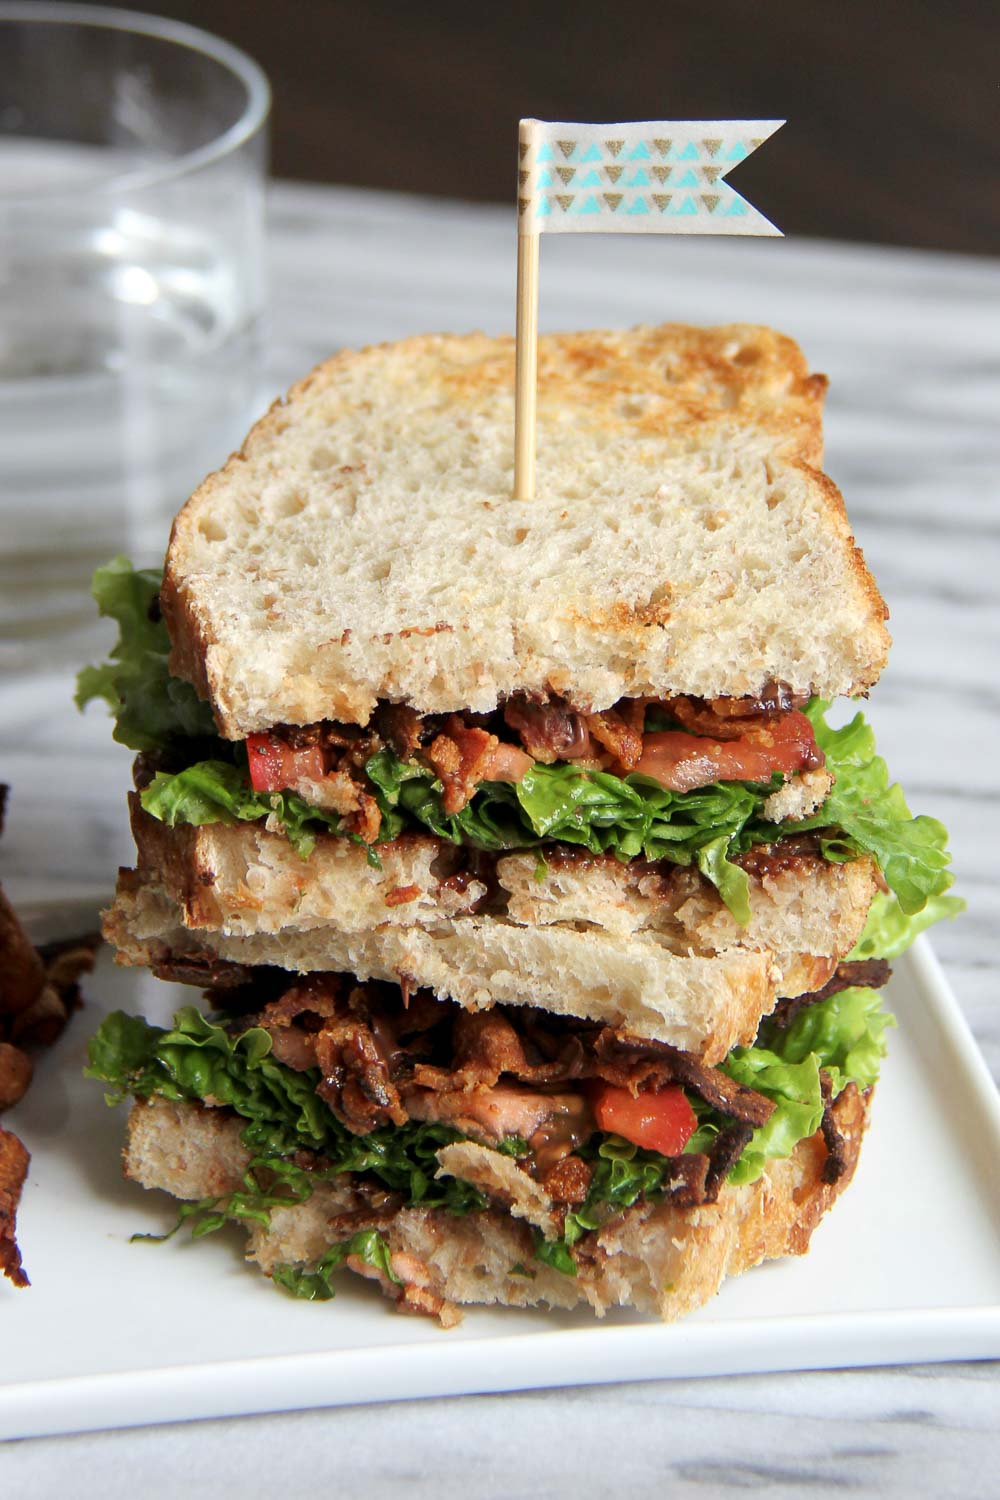 Bet you've never had Nutella BLT Sandwich. The combination of sweet and savory brings this BLT sandwich to another level - so simple to make and hits the spot every time!